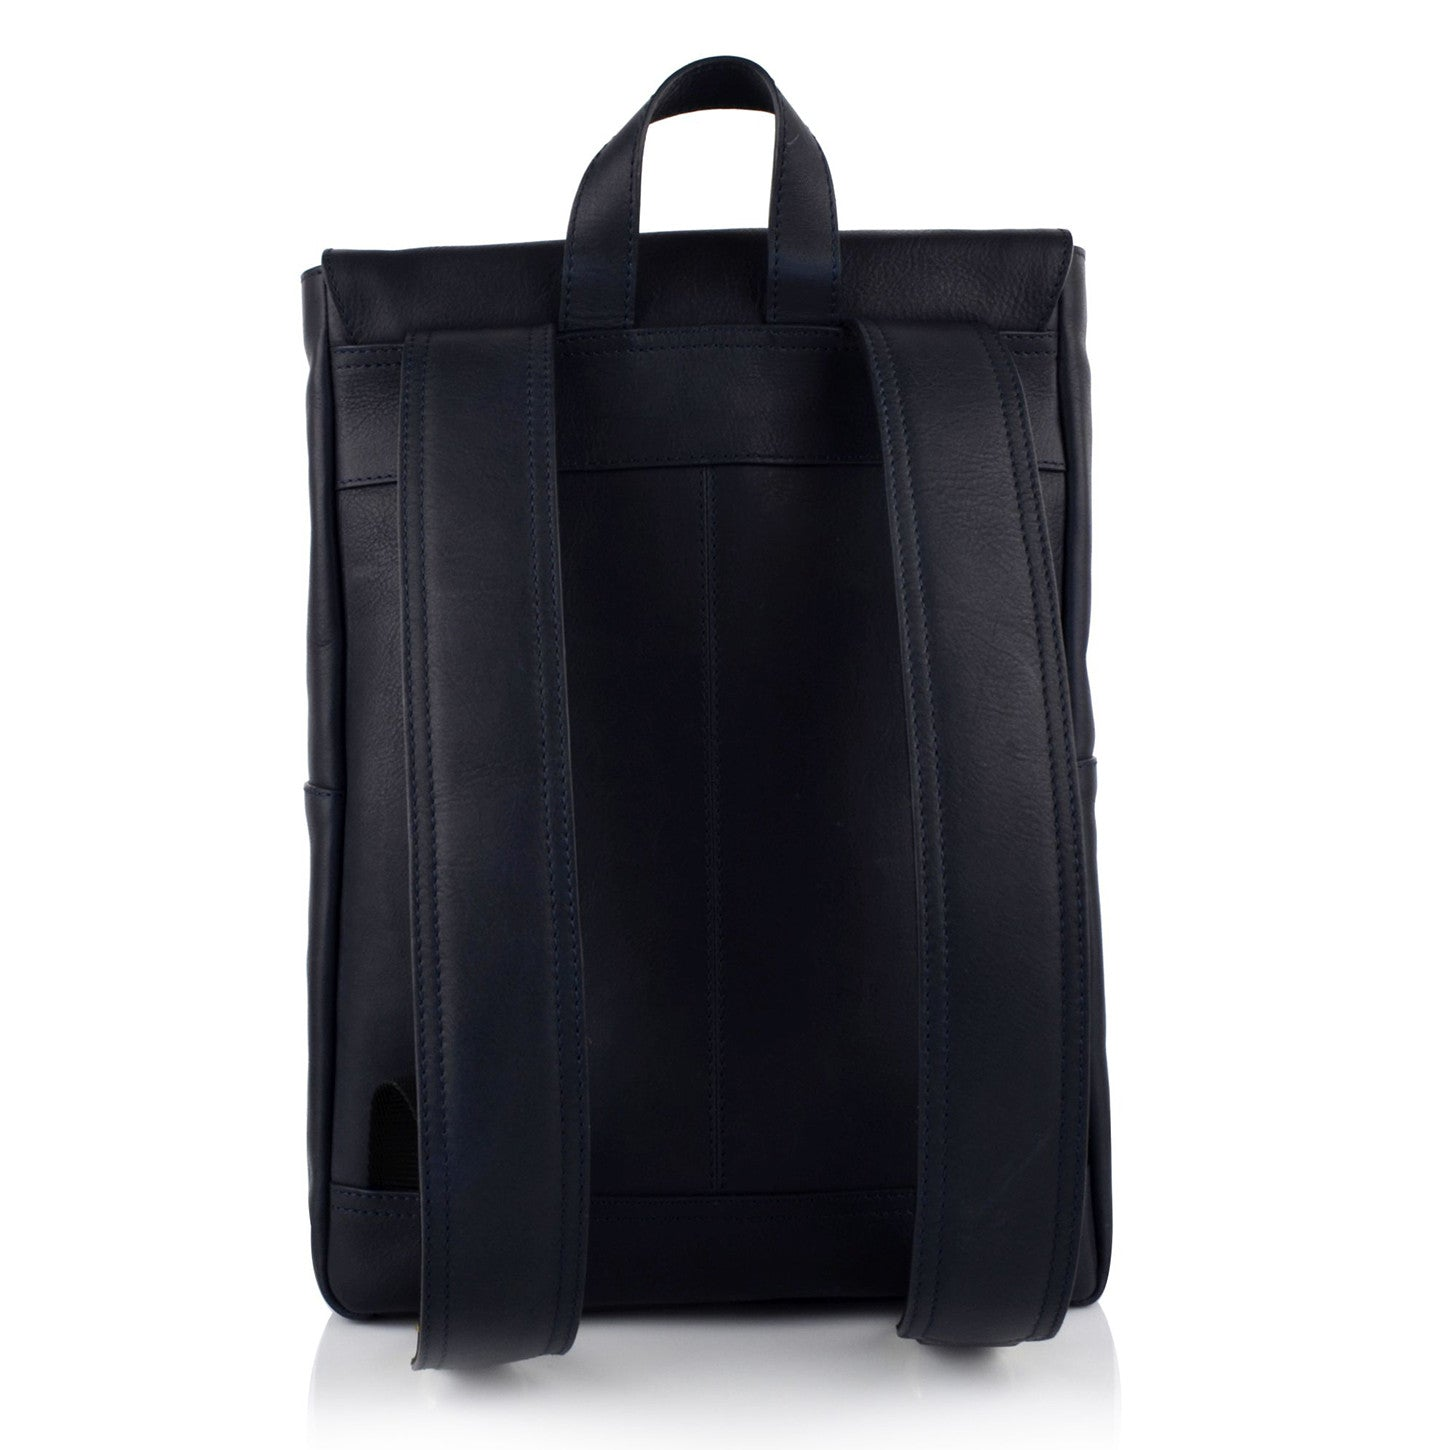 LG16040 - Collezione Miami Men's Navy Backpack Bag